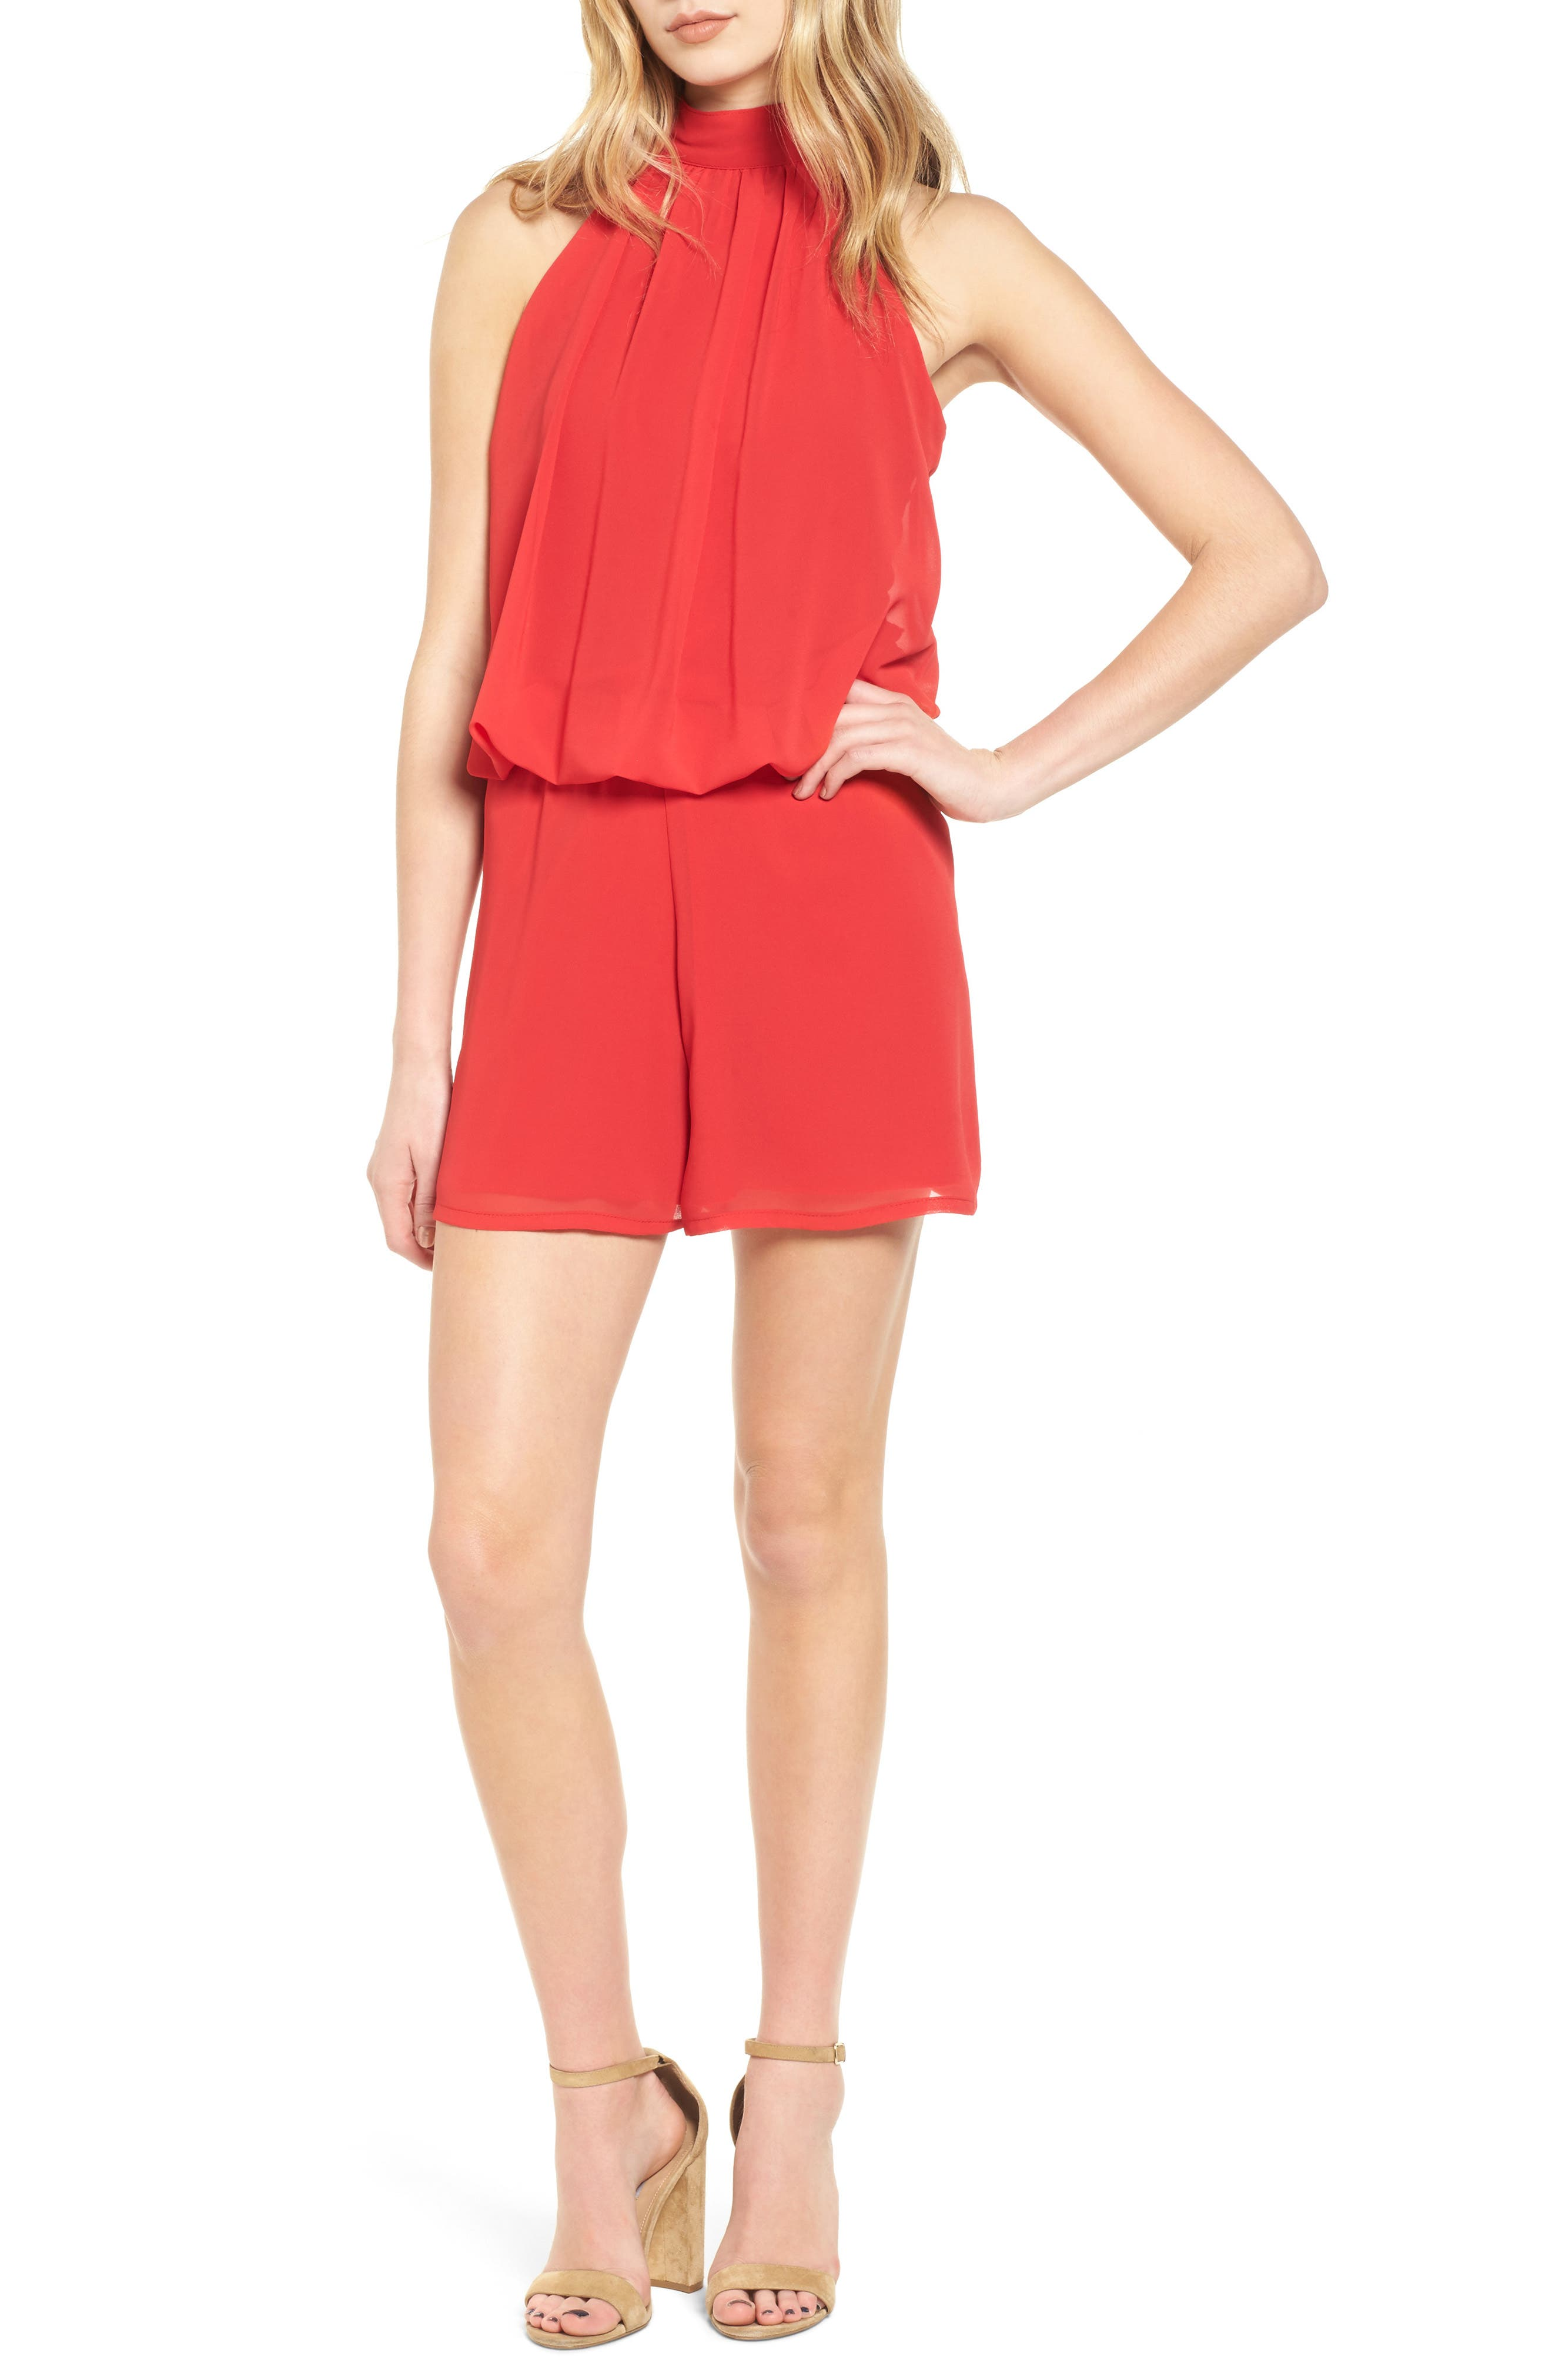 Sentimental NY Bow Back Blouson Romper